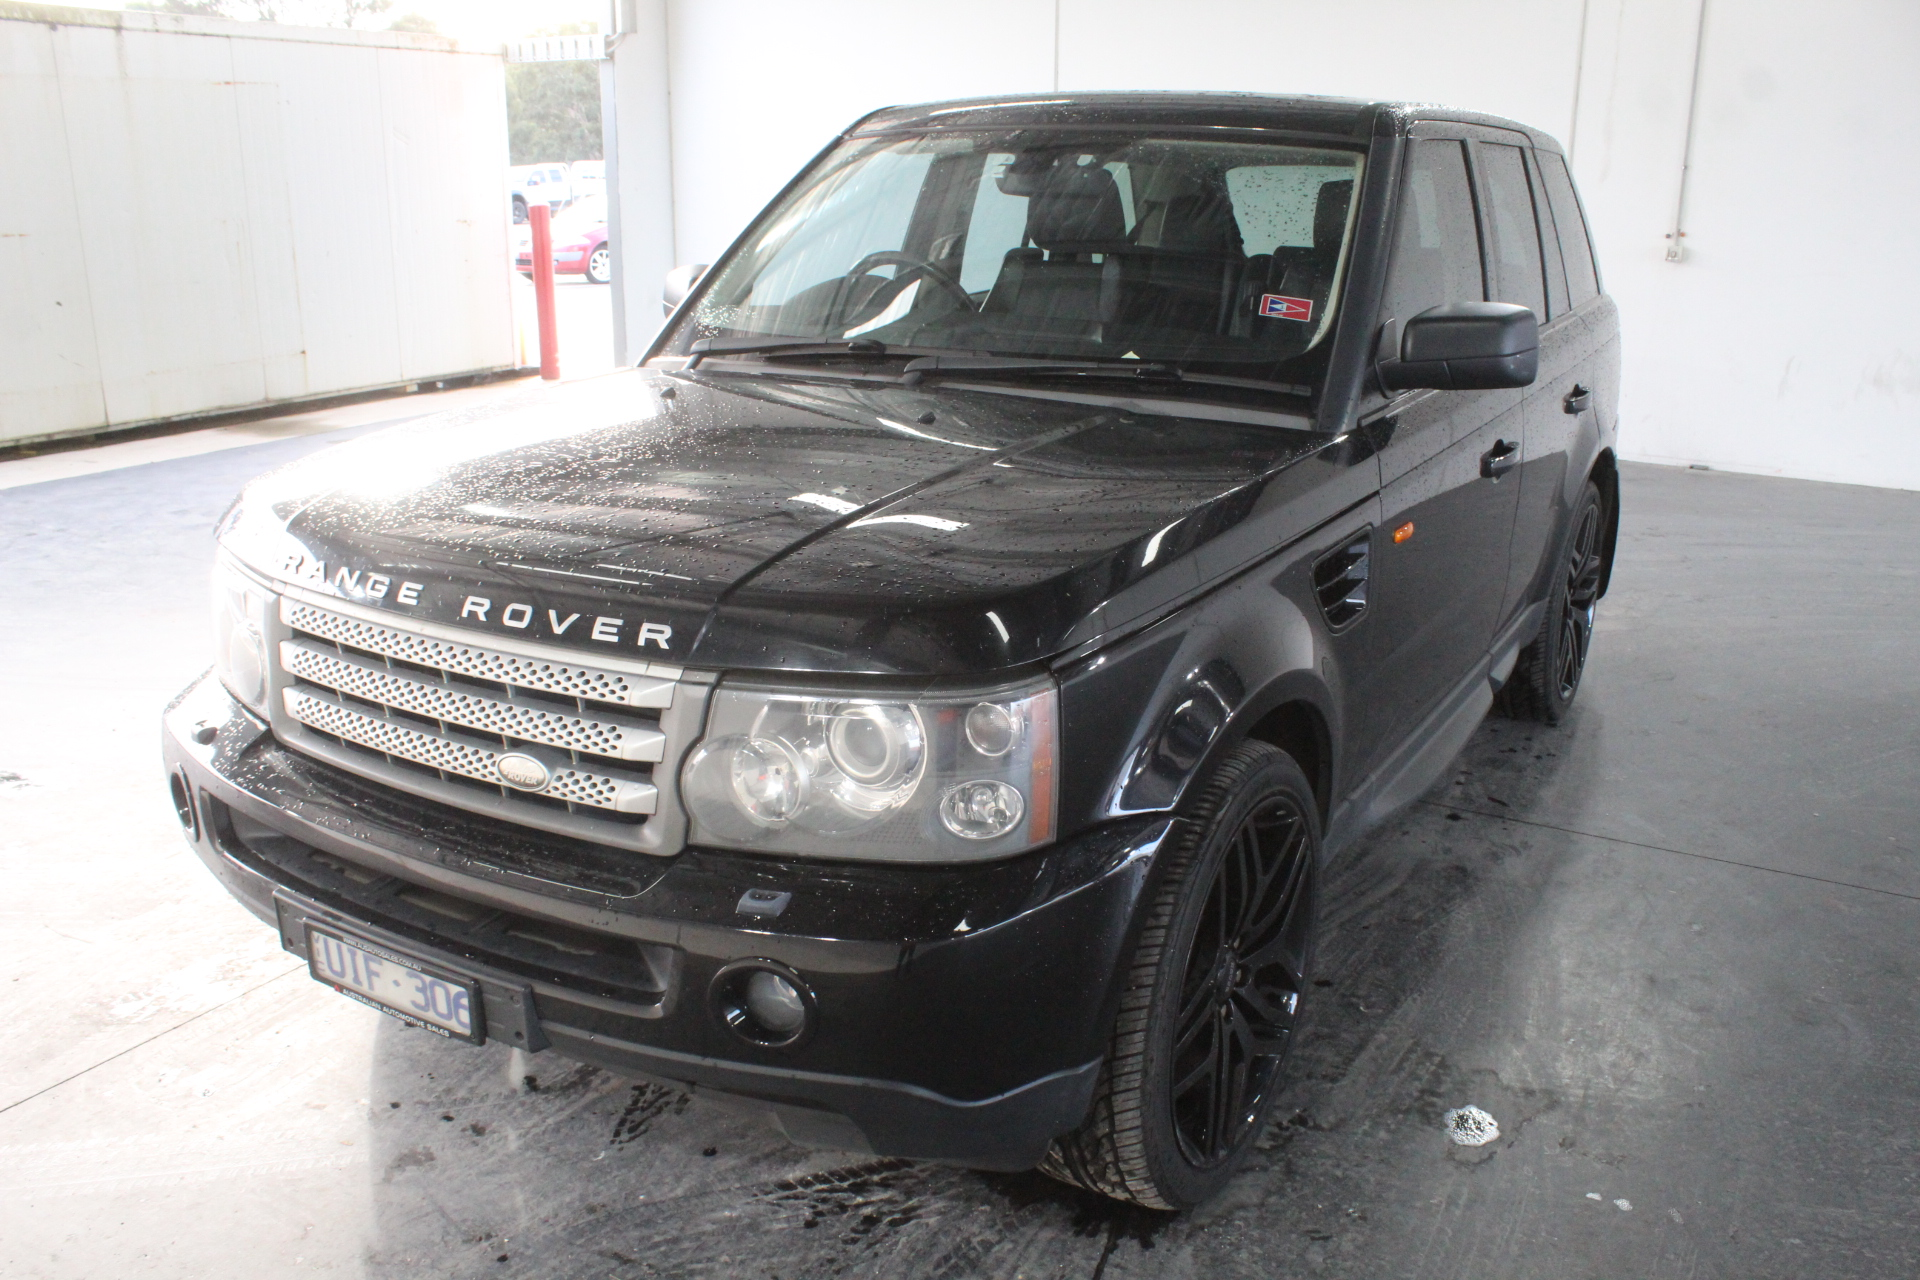 2006 Land Rover Range Rover Sport Turbo Diesel Automatic Wagon